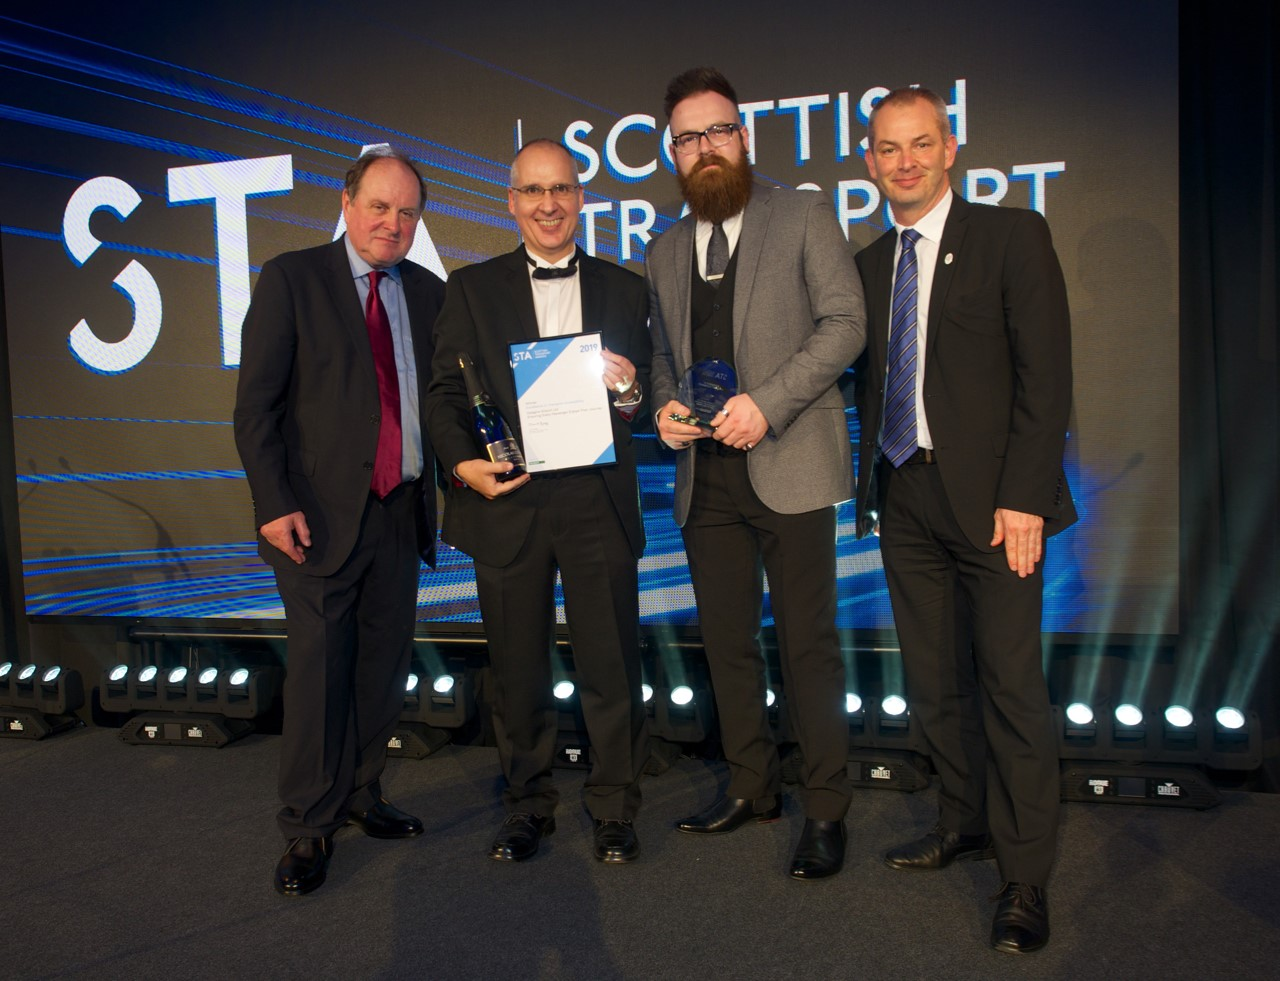 scottish transport awards 1019